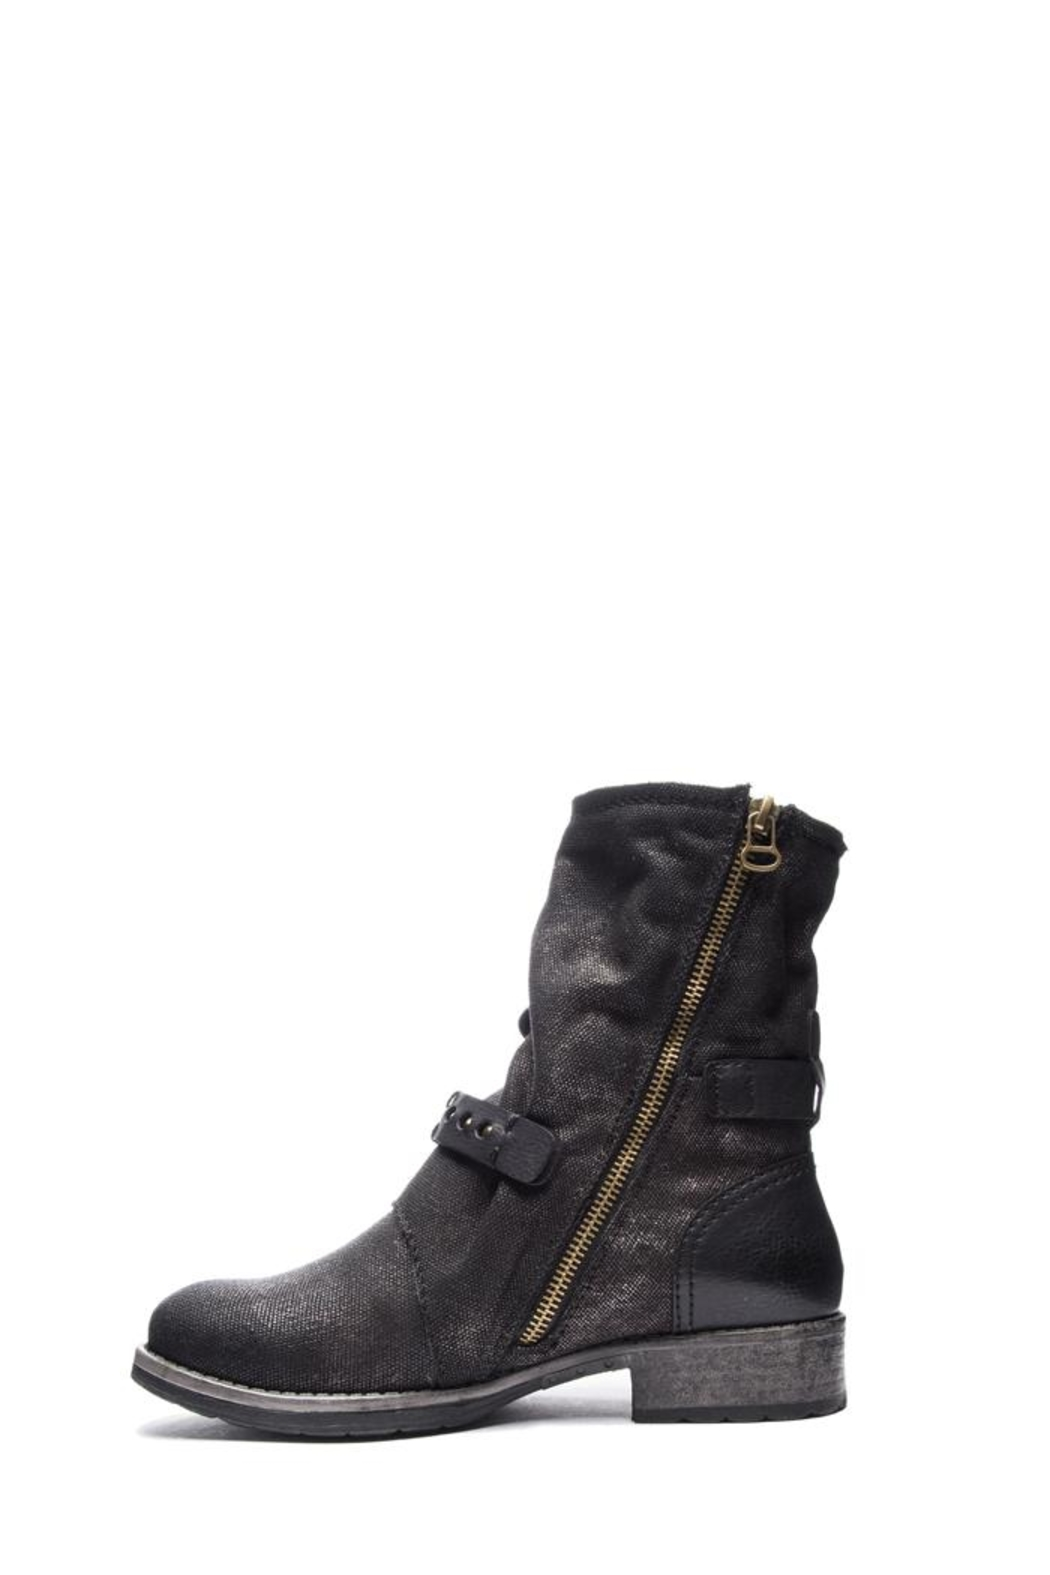 Dirty Laundry Tycen Canvas Boot - Side Cropped Image